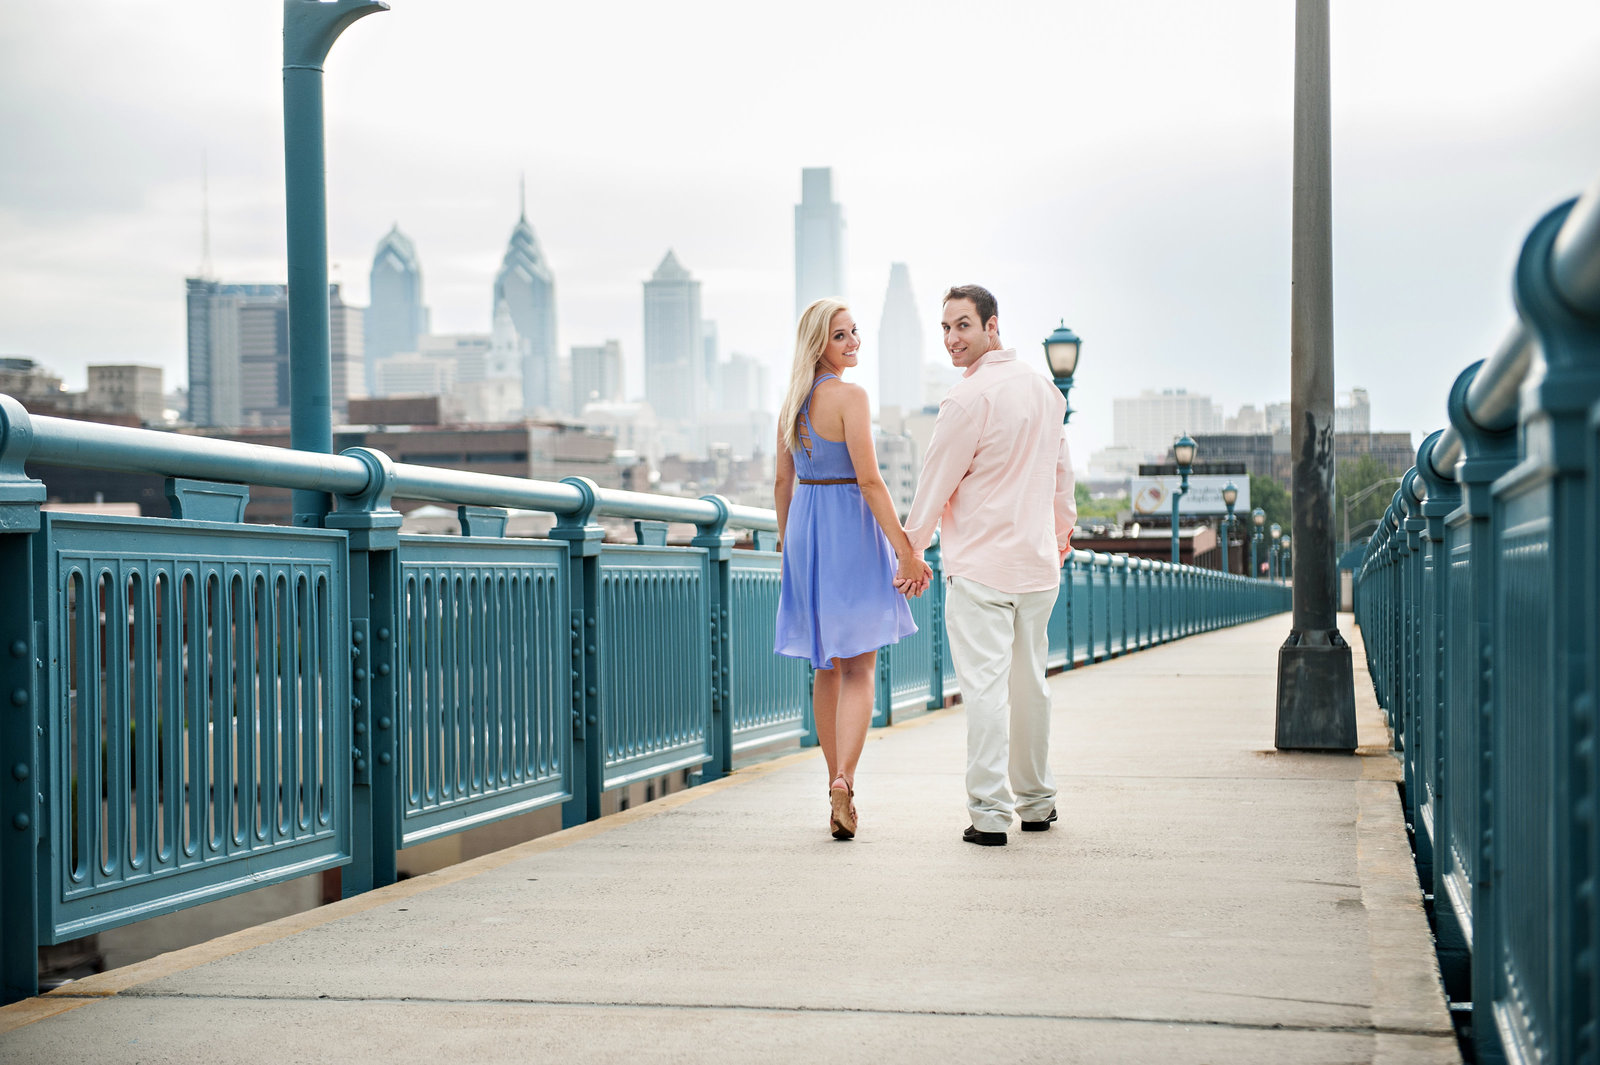 A couple walk on the ben franklin bridge with the philadelphia skyline behind them.